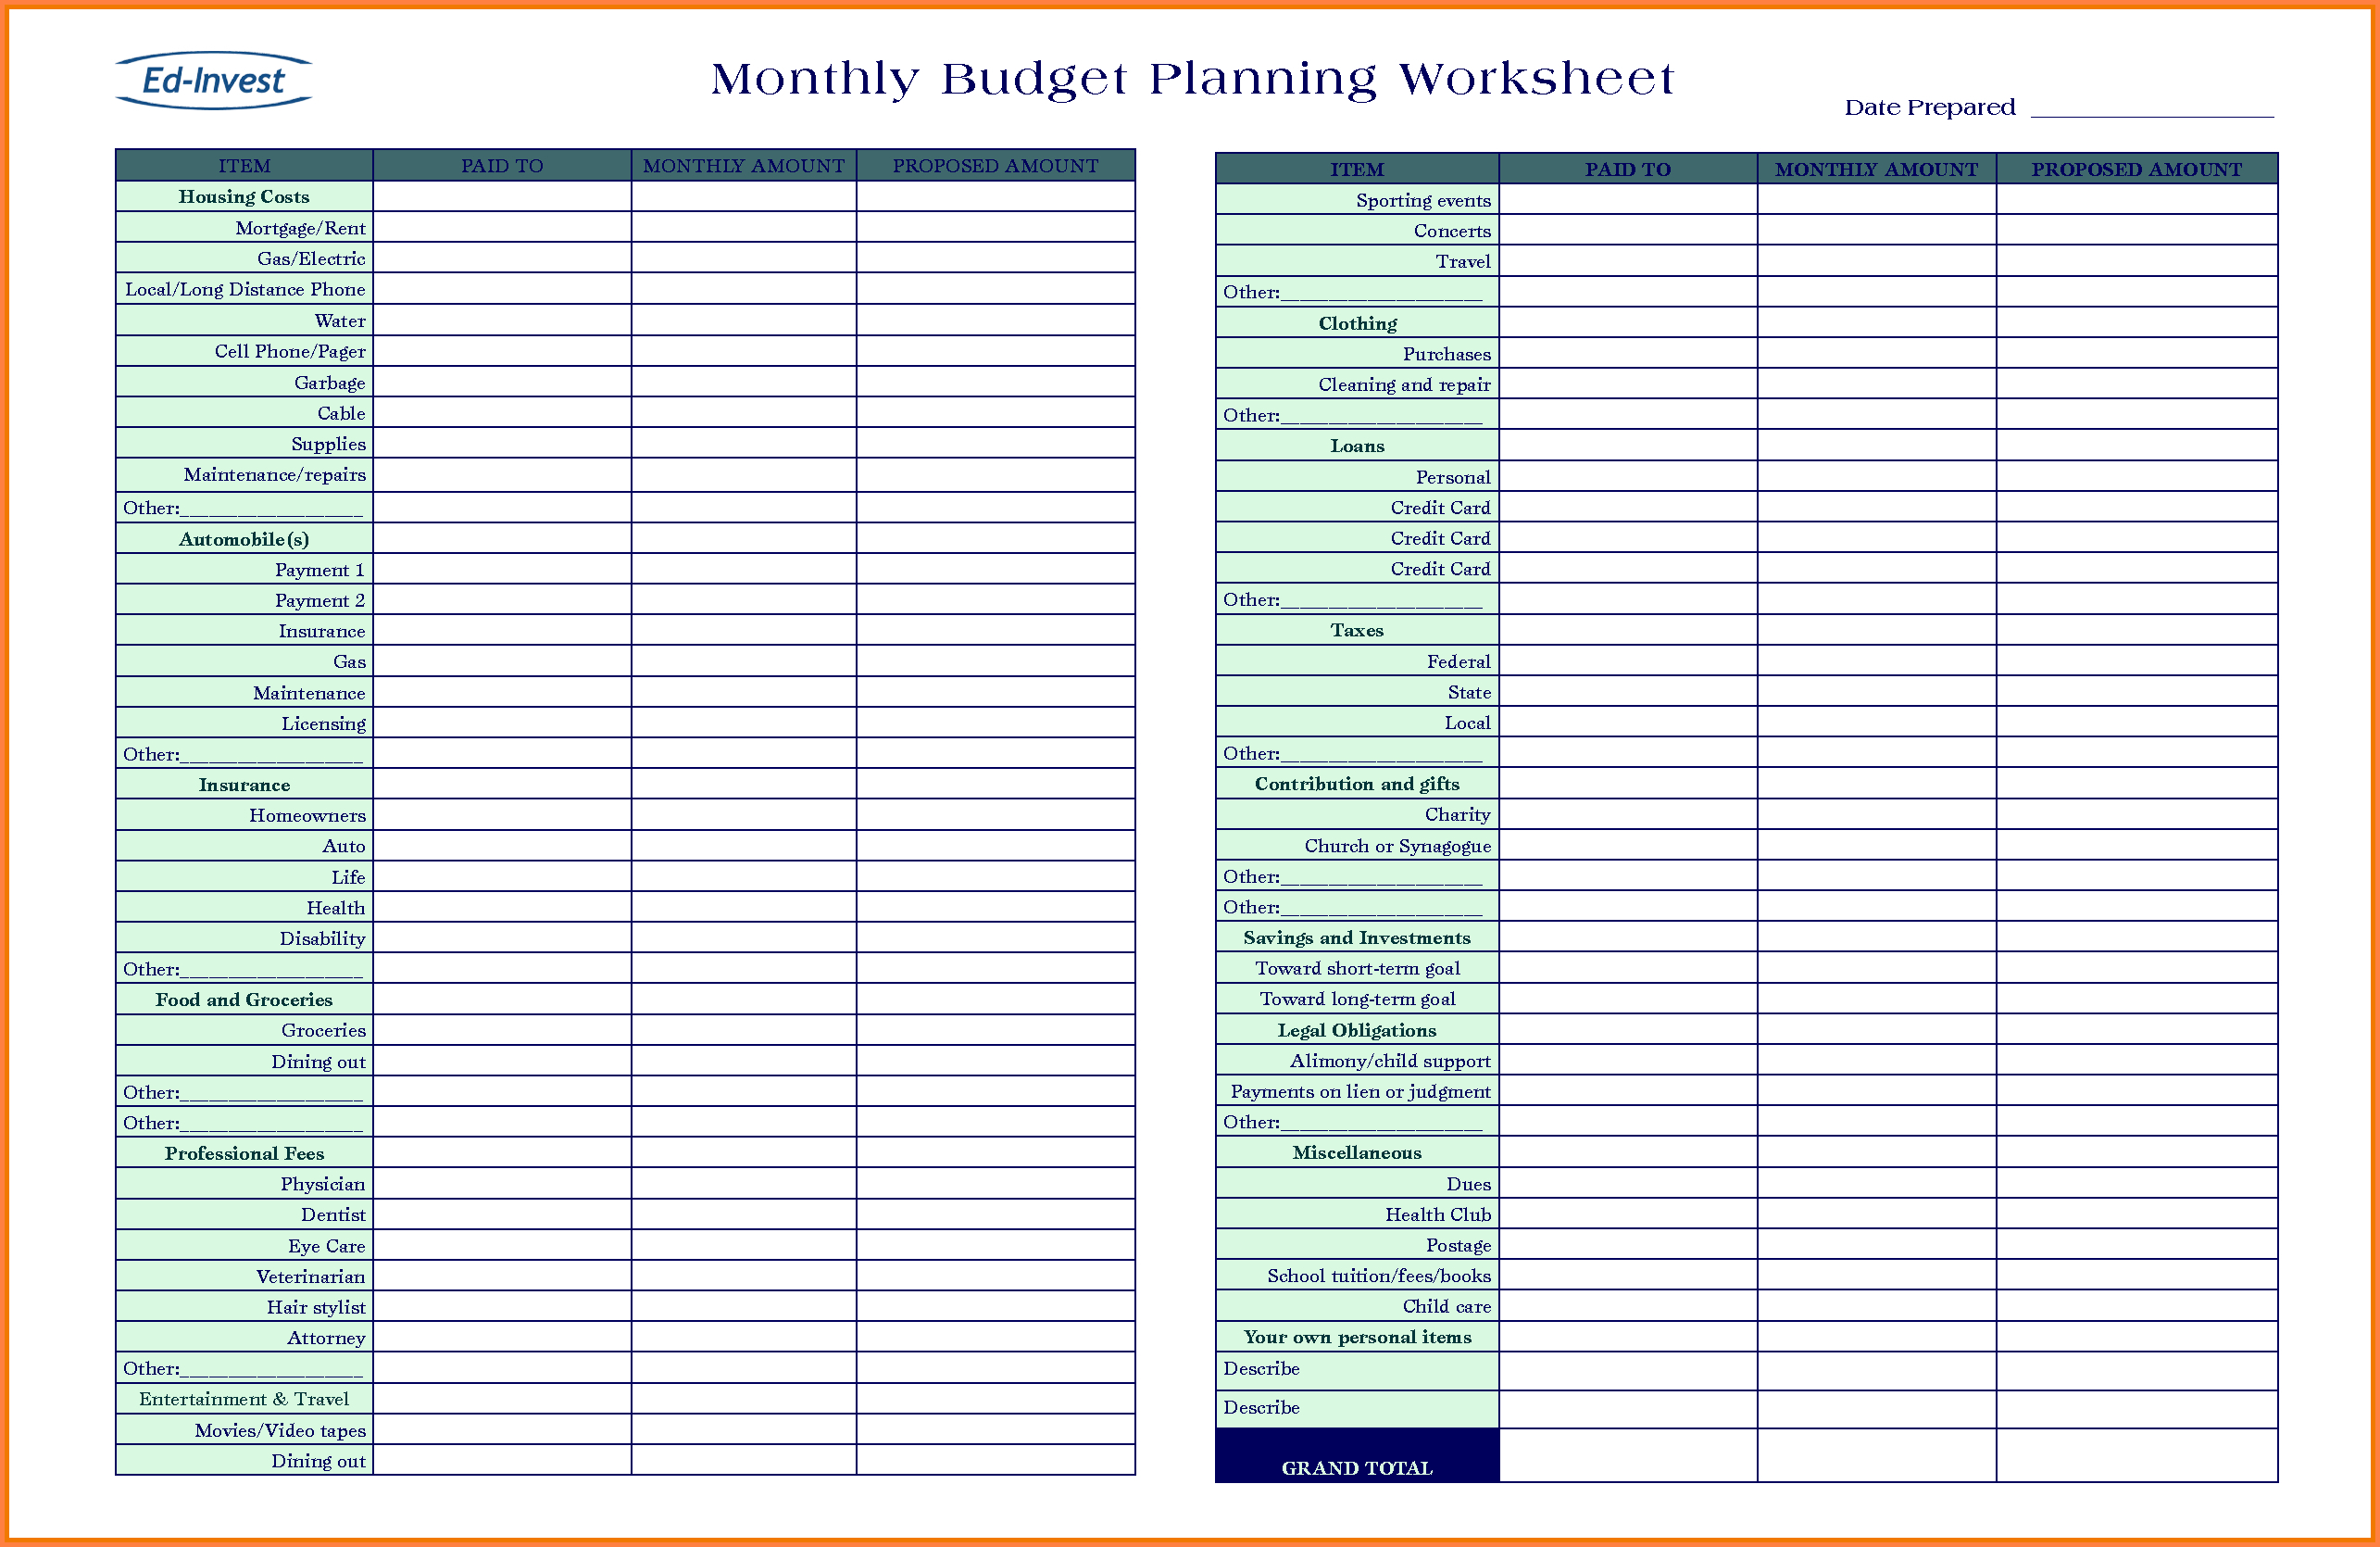 Budget Planning Spreadsheet Plannerorksheet Picture Highest Quality Intended For Spreadsheet Budget Planner